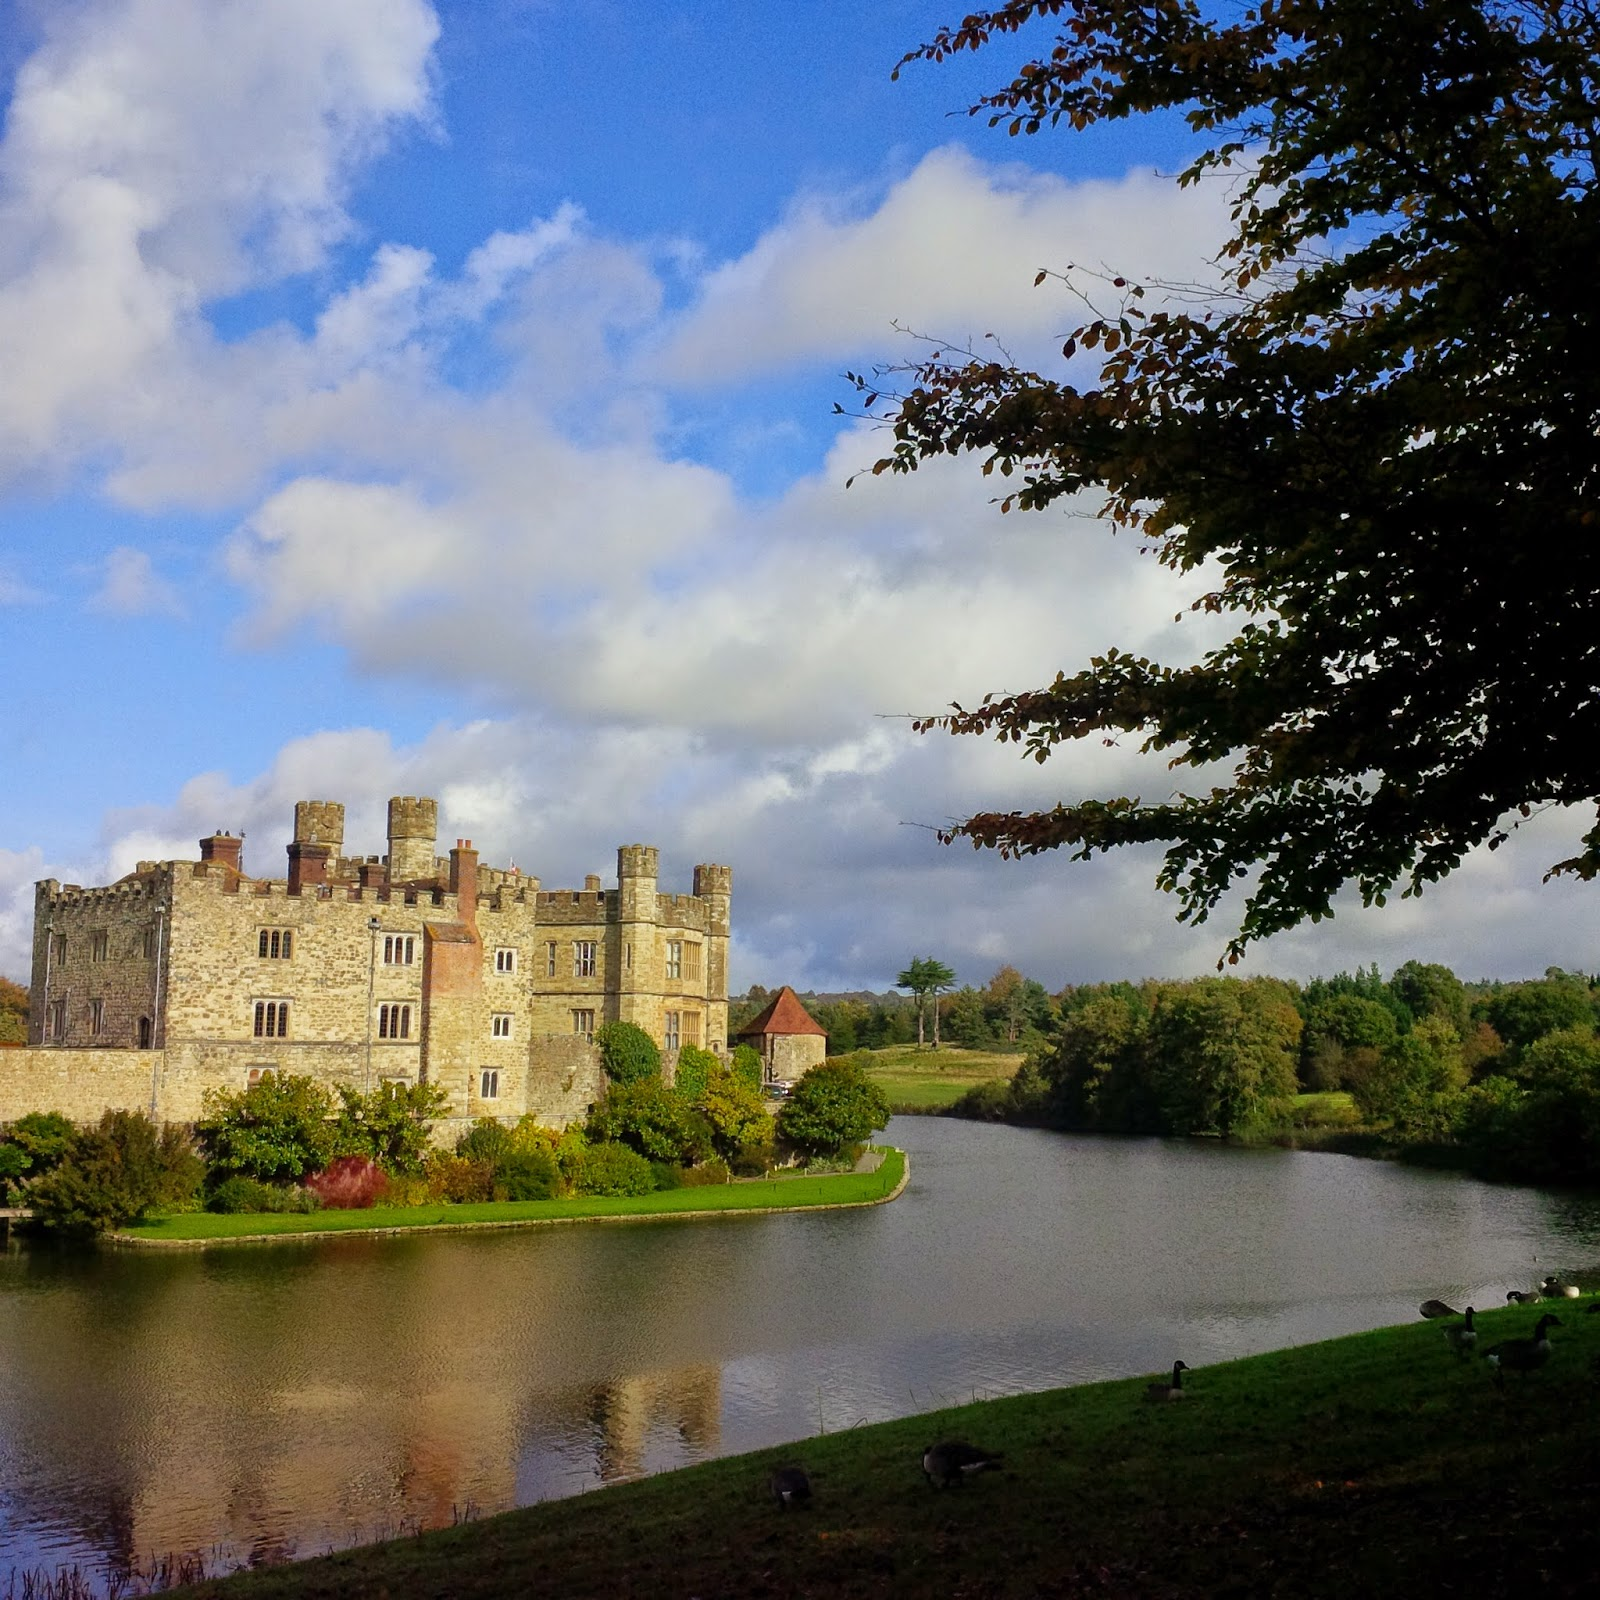 A view of Leeds Castle